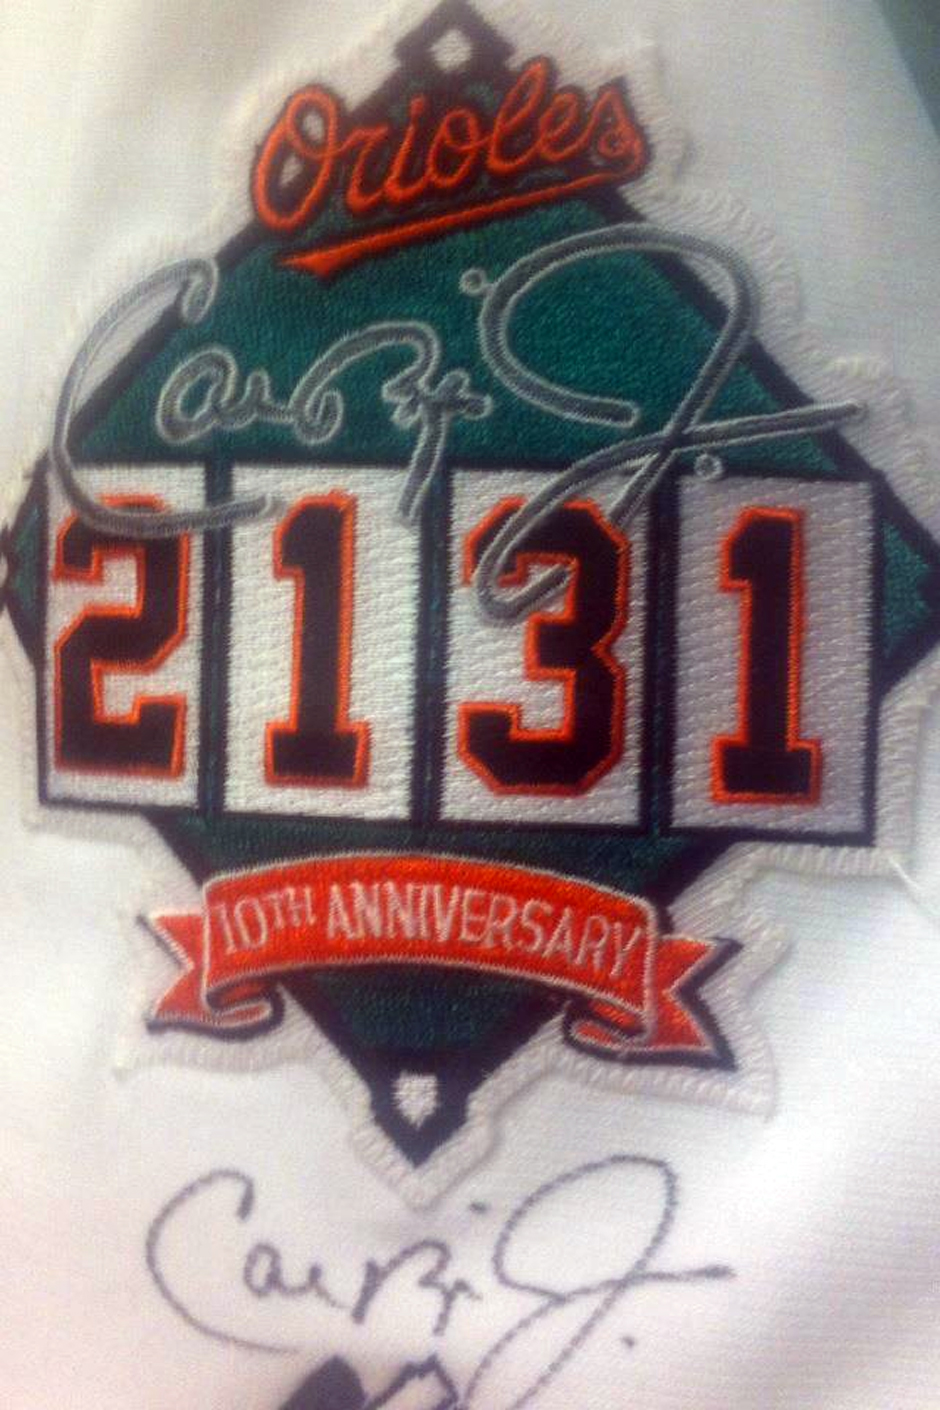 2131 10th Anniversary Commemorative Patch